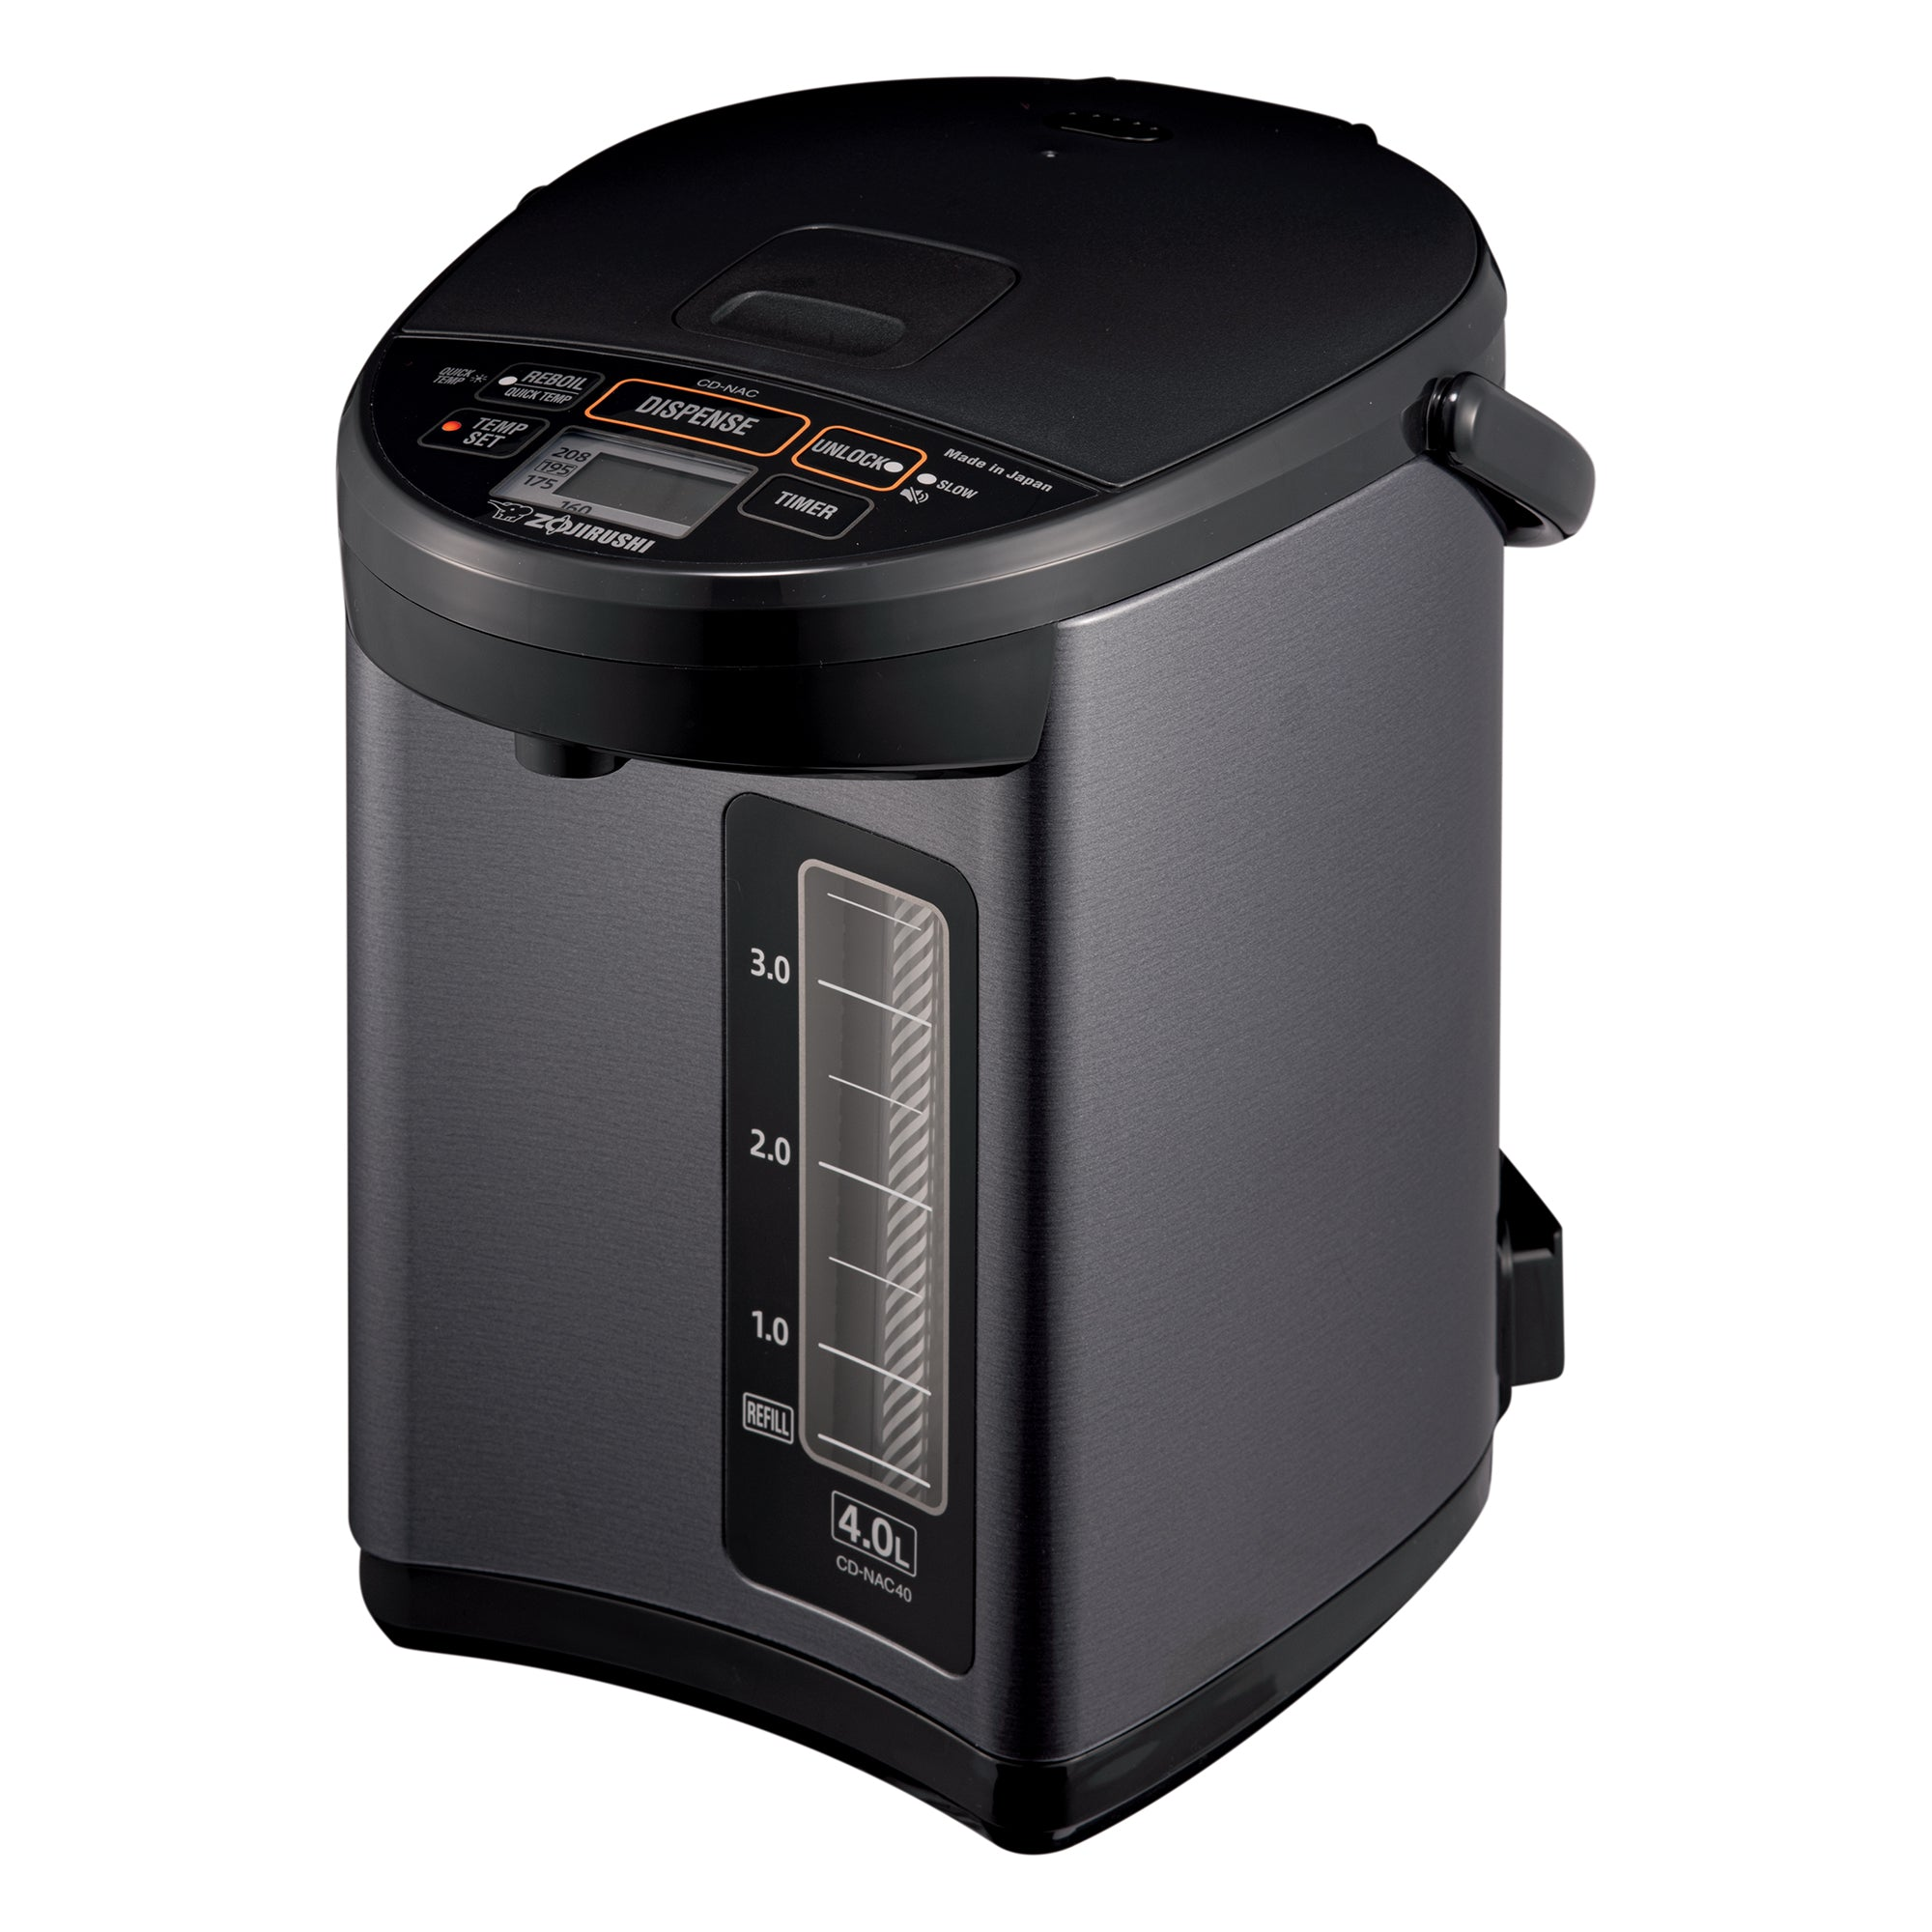 Micom Water Boiler & Warmer CD-NAC40/50